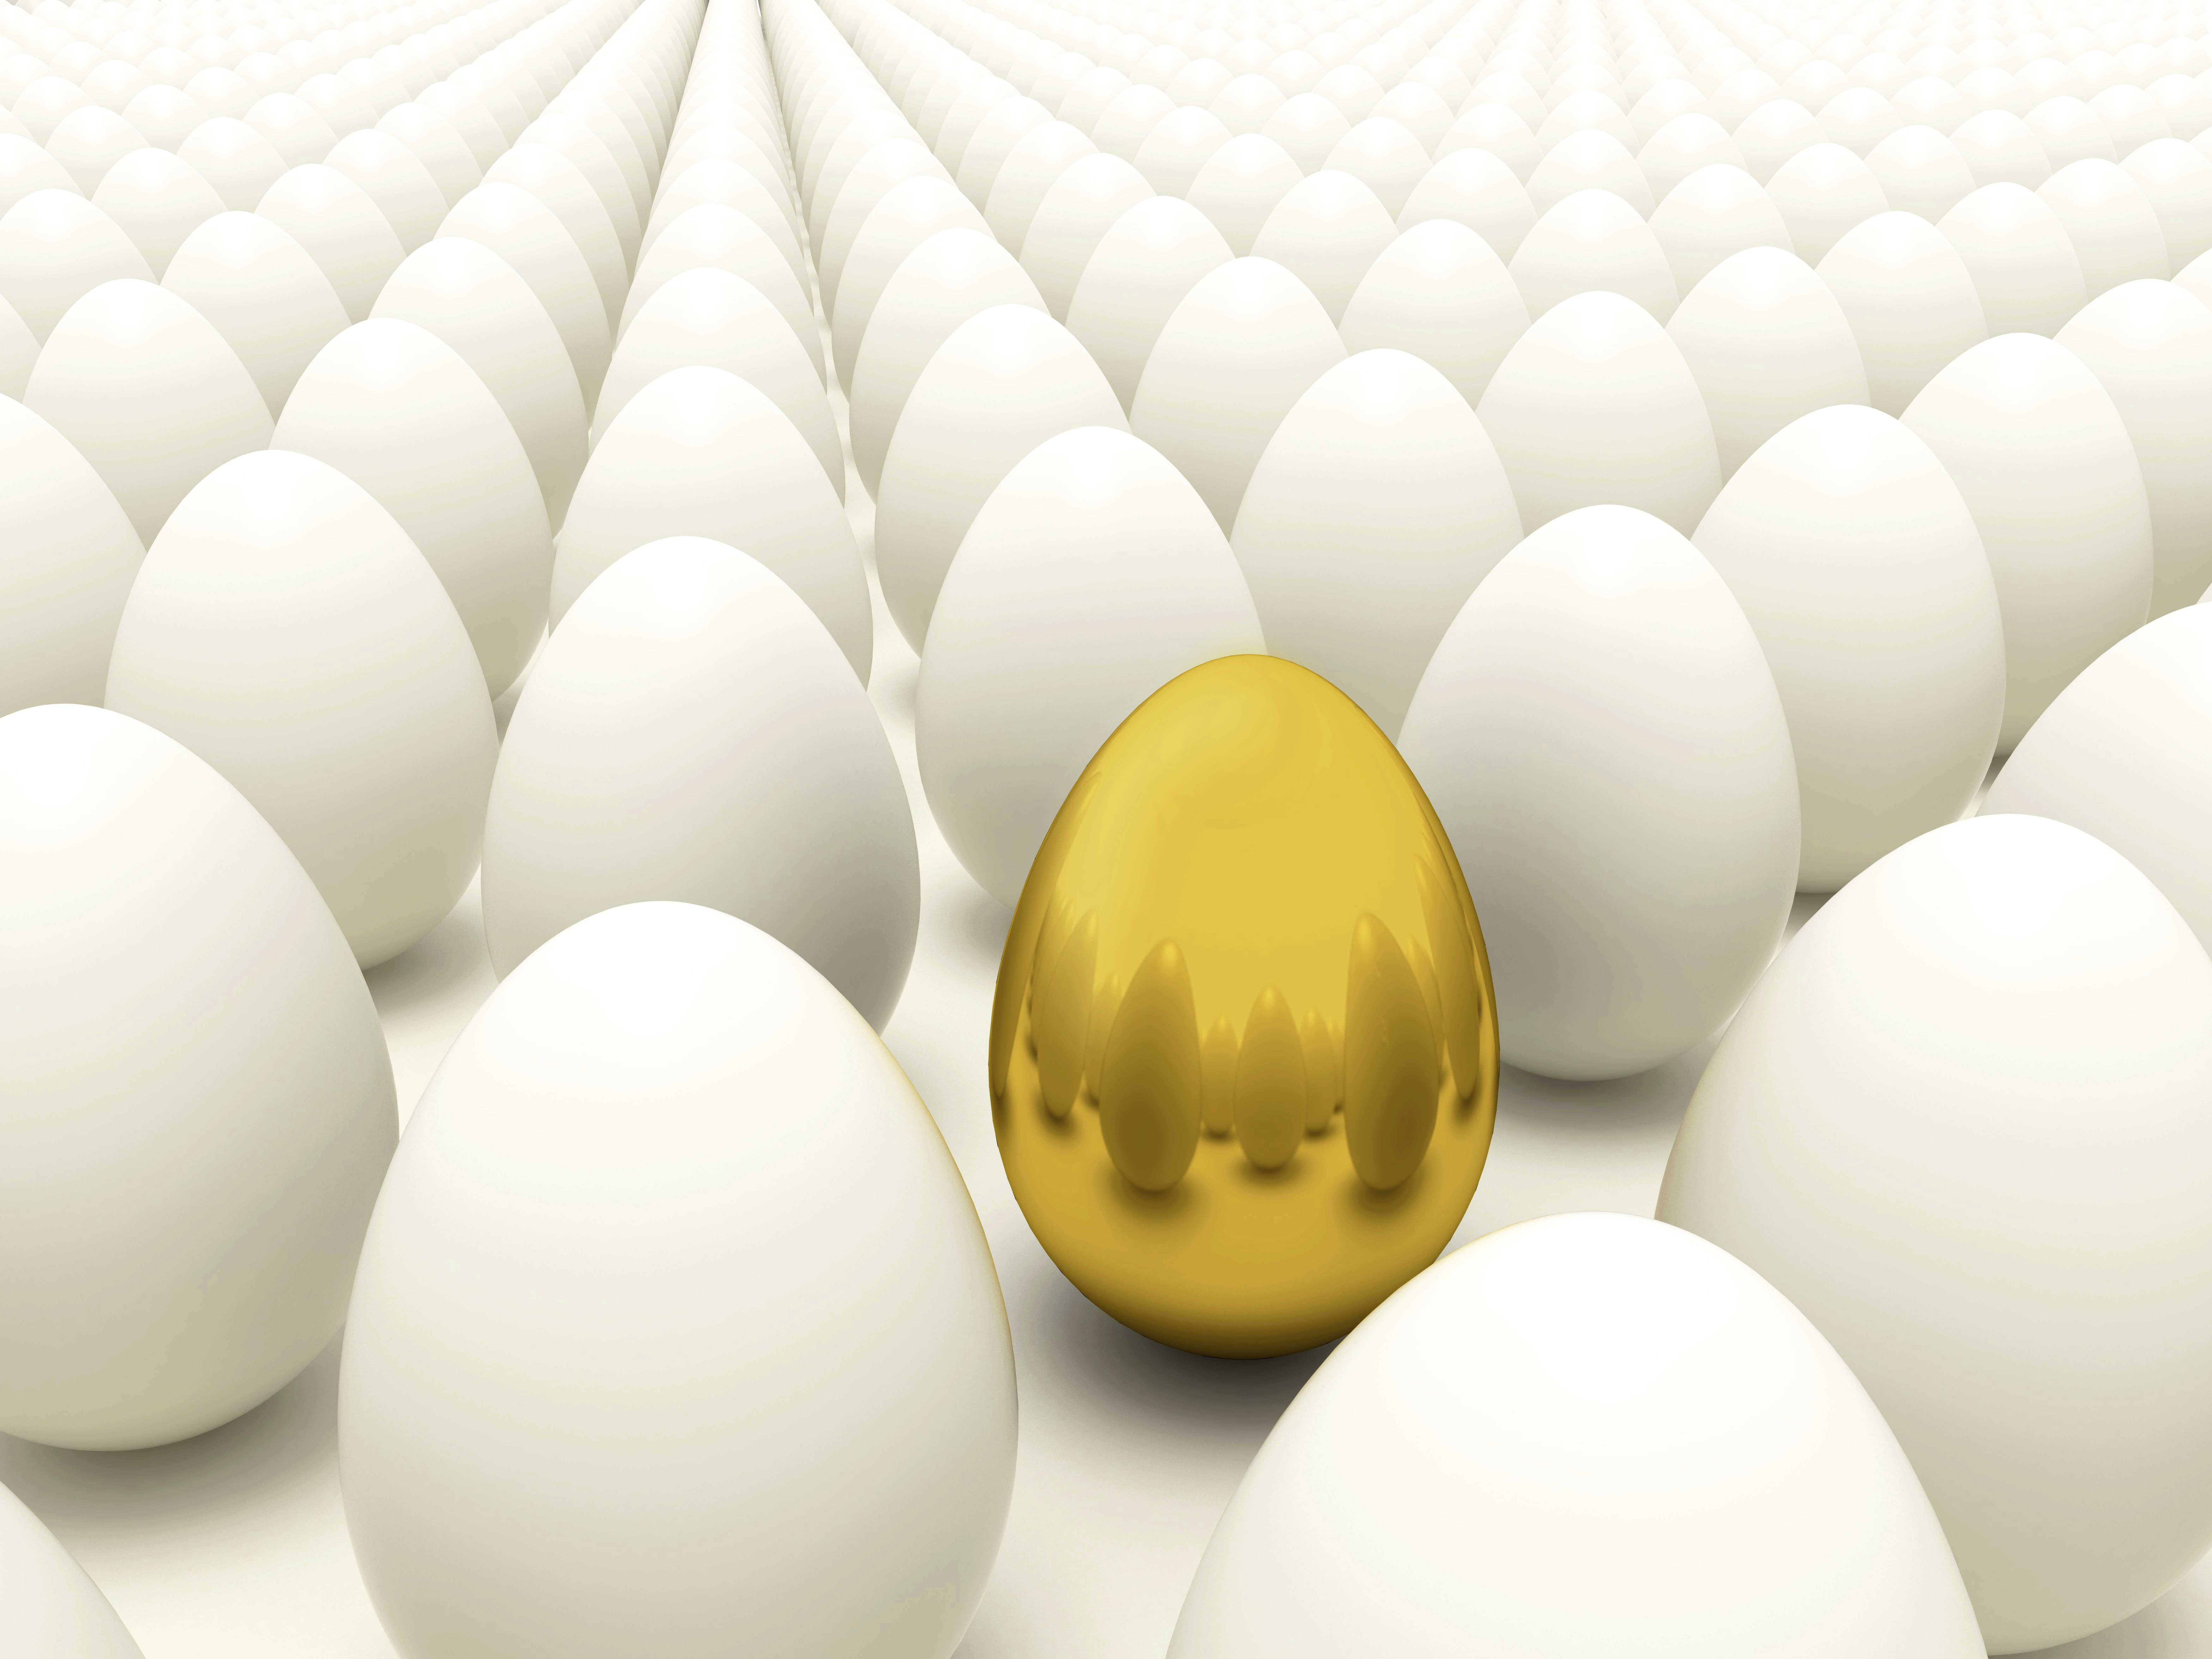 Creating The Golden Egg: Tips on Innovating Successful New Products ...